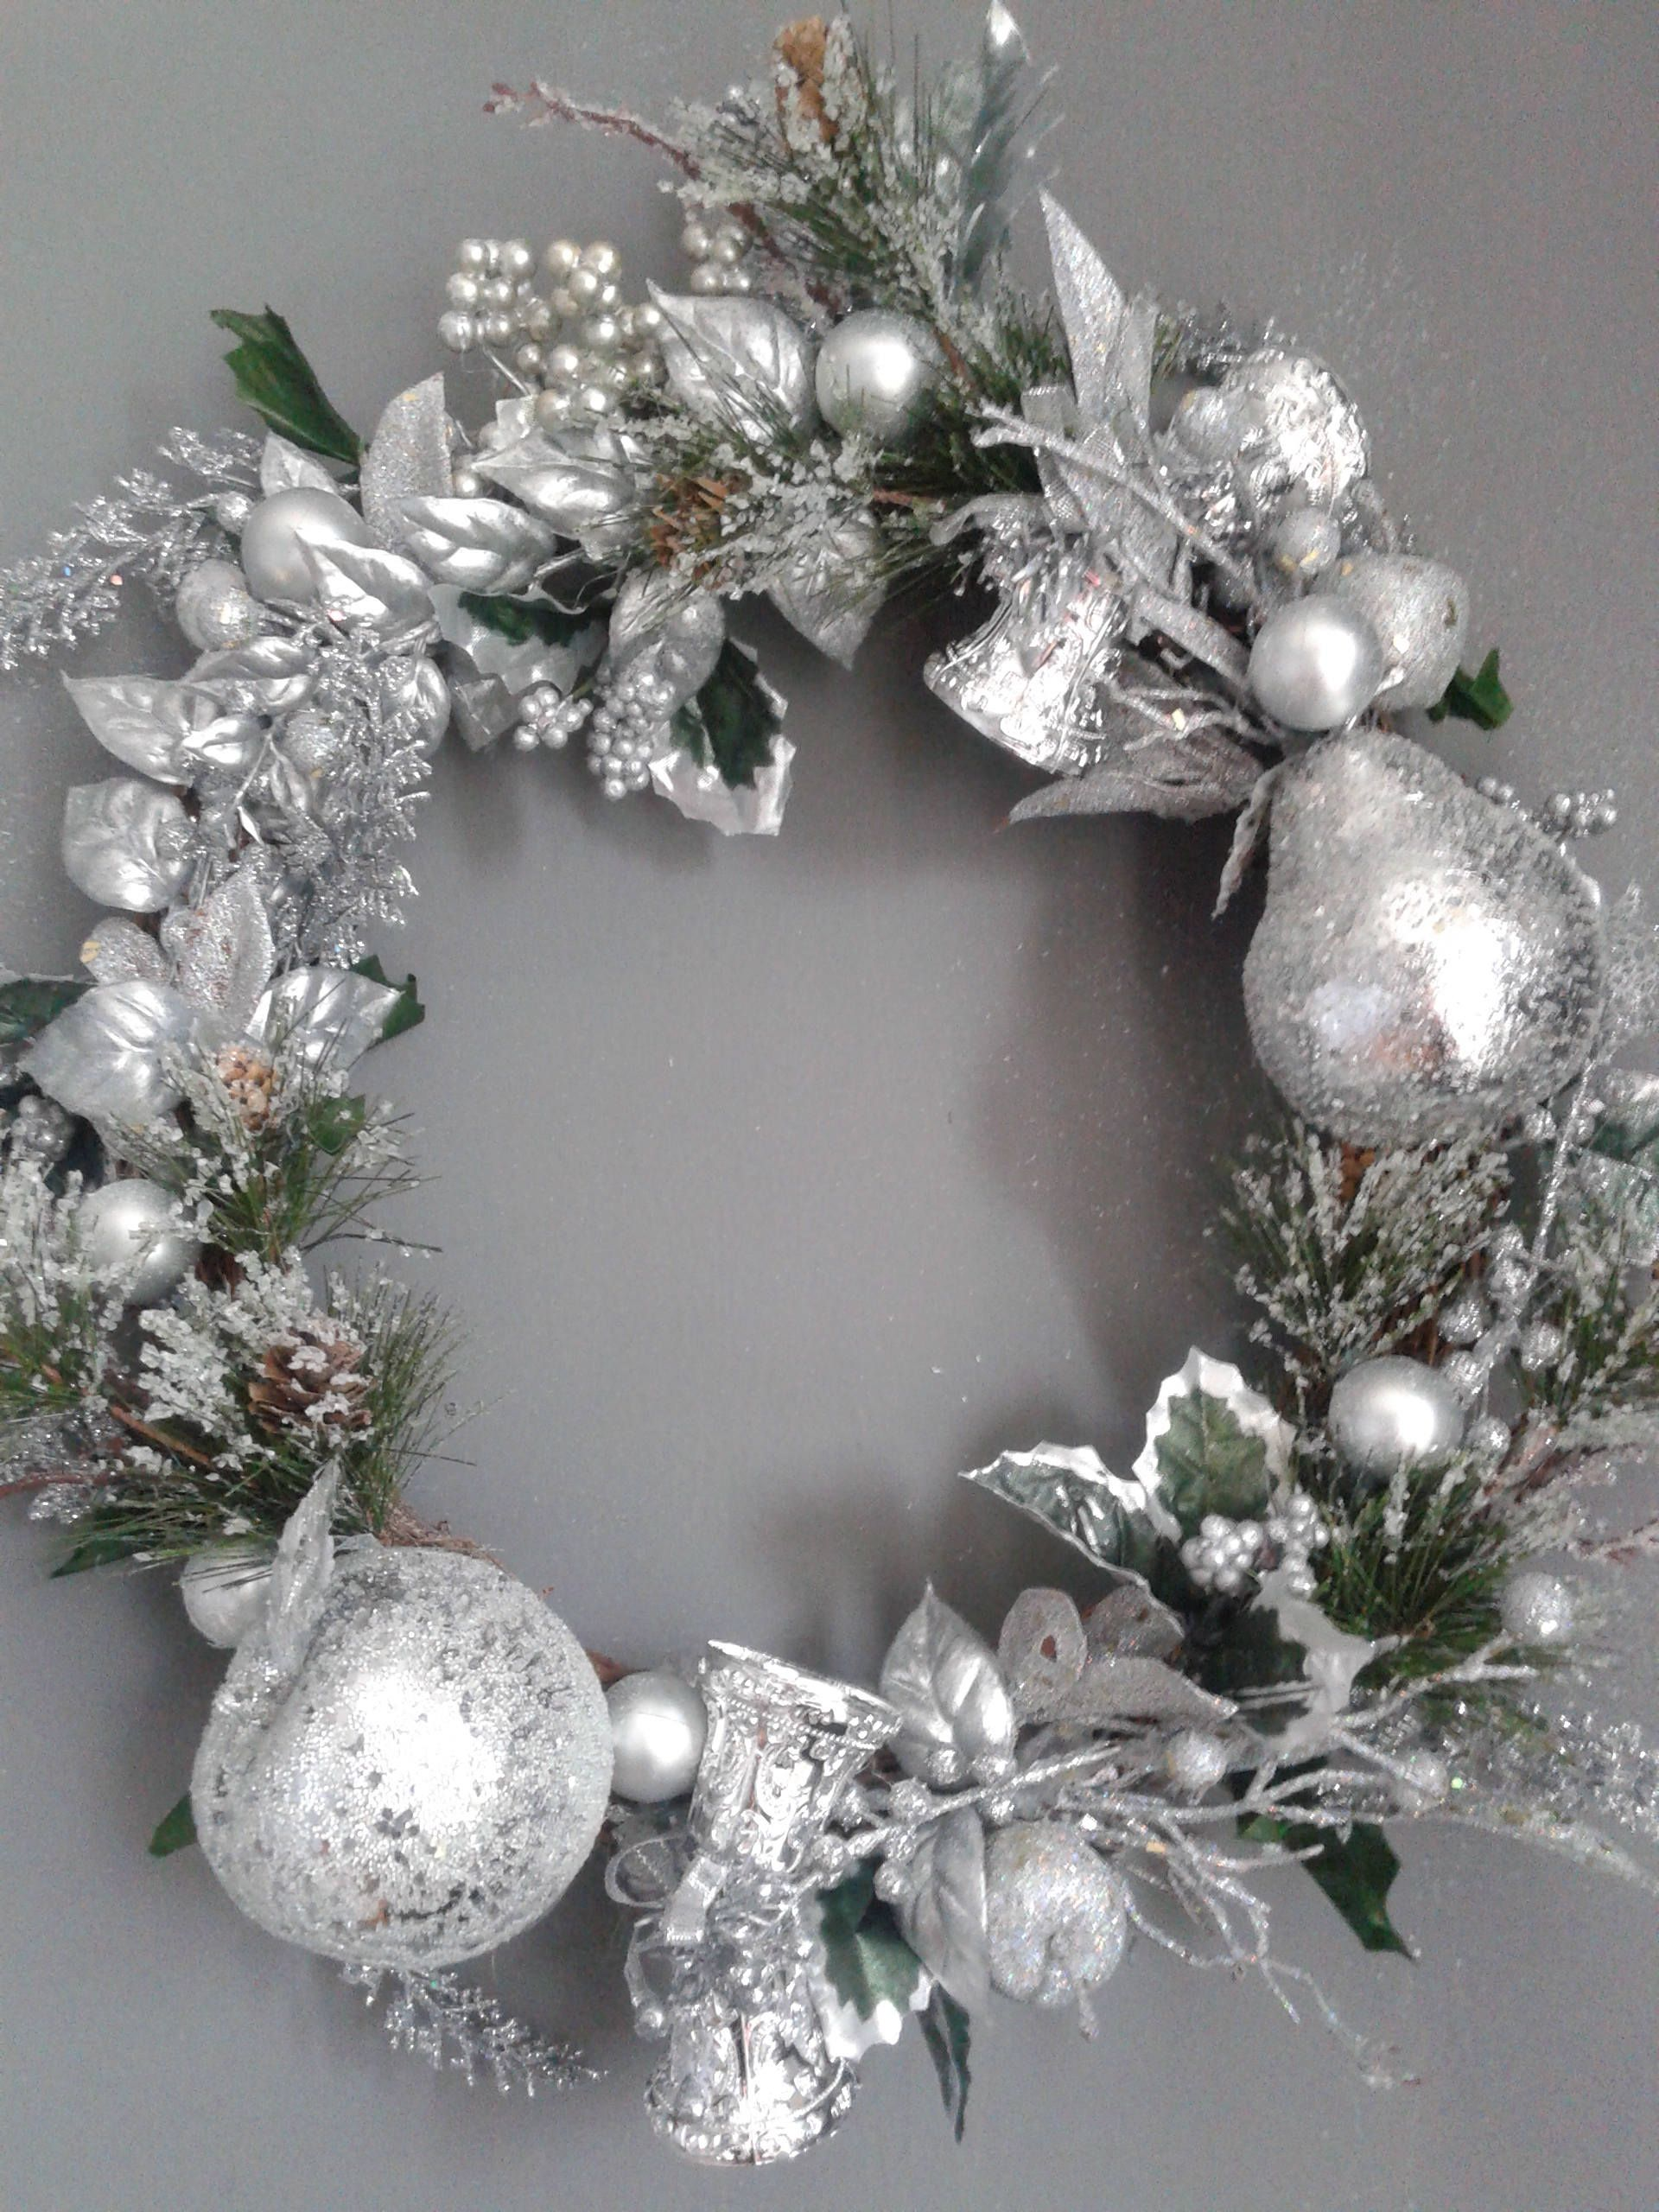 16 Silver Leaves And Fruit Wreath Silver Ornaments Grapevine Wreaths Christmas Wreaths Holiday Wreaths Silver Wreaths Fruit Wreath Grapevine Christmas Silver Wreath